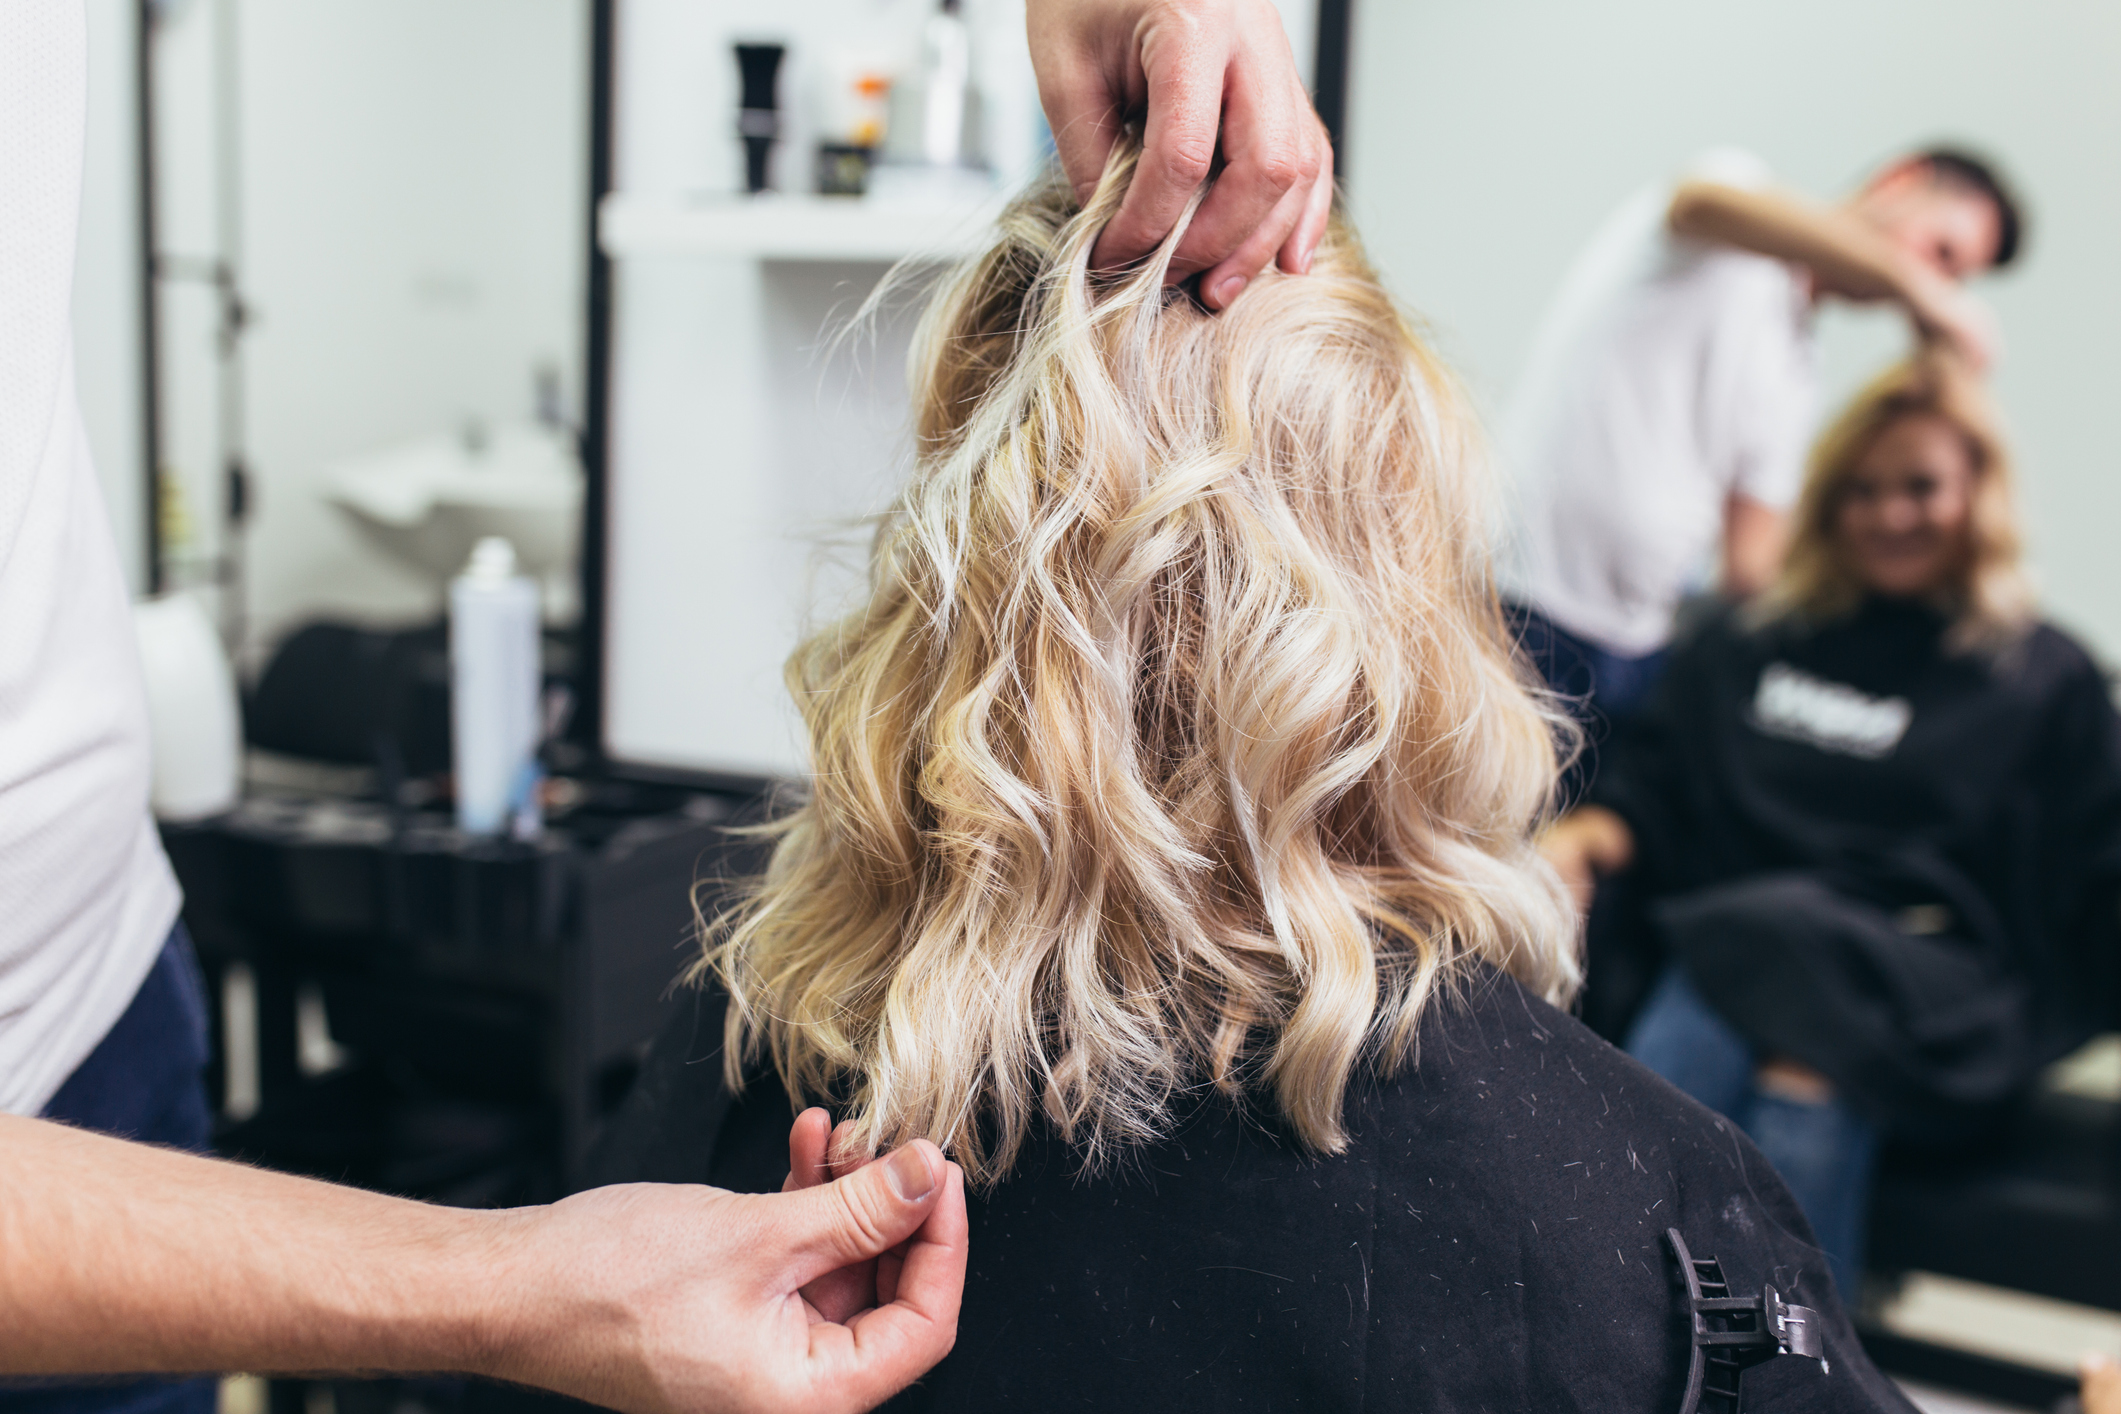 Close-up of a woman in hair salon, adding luxurious hair for women with hair loss.